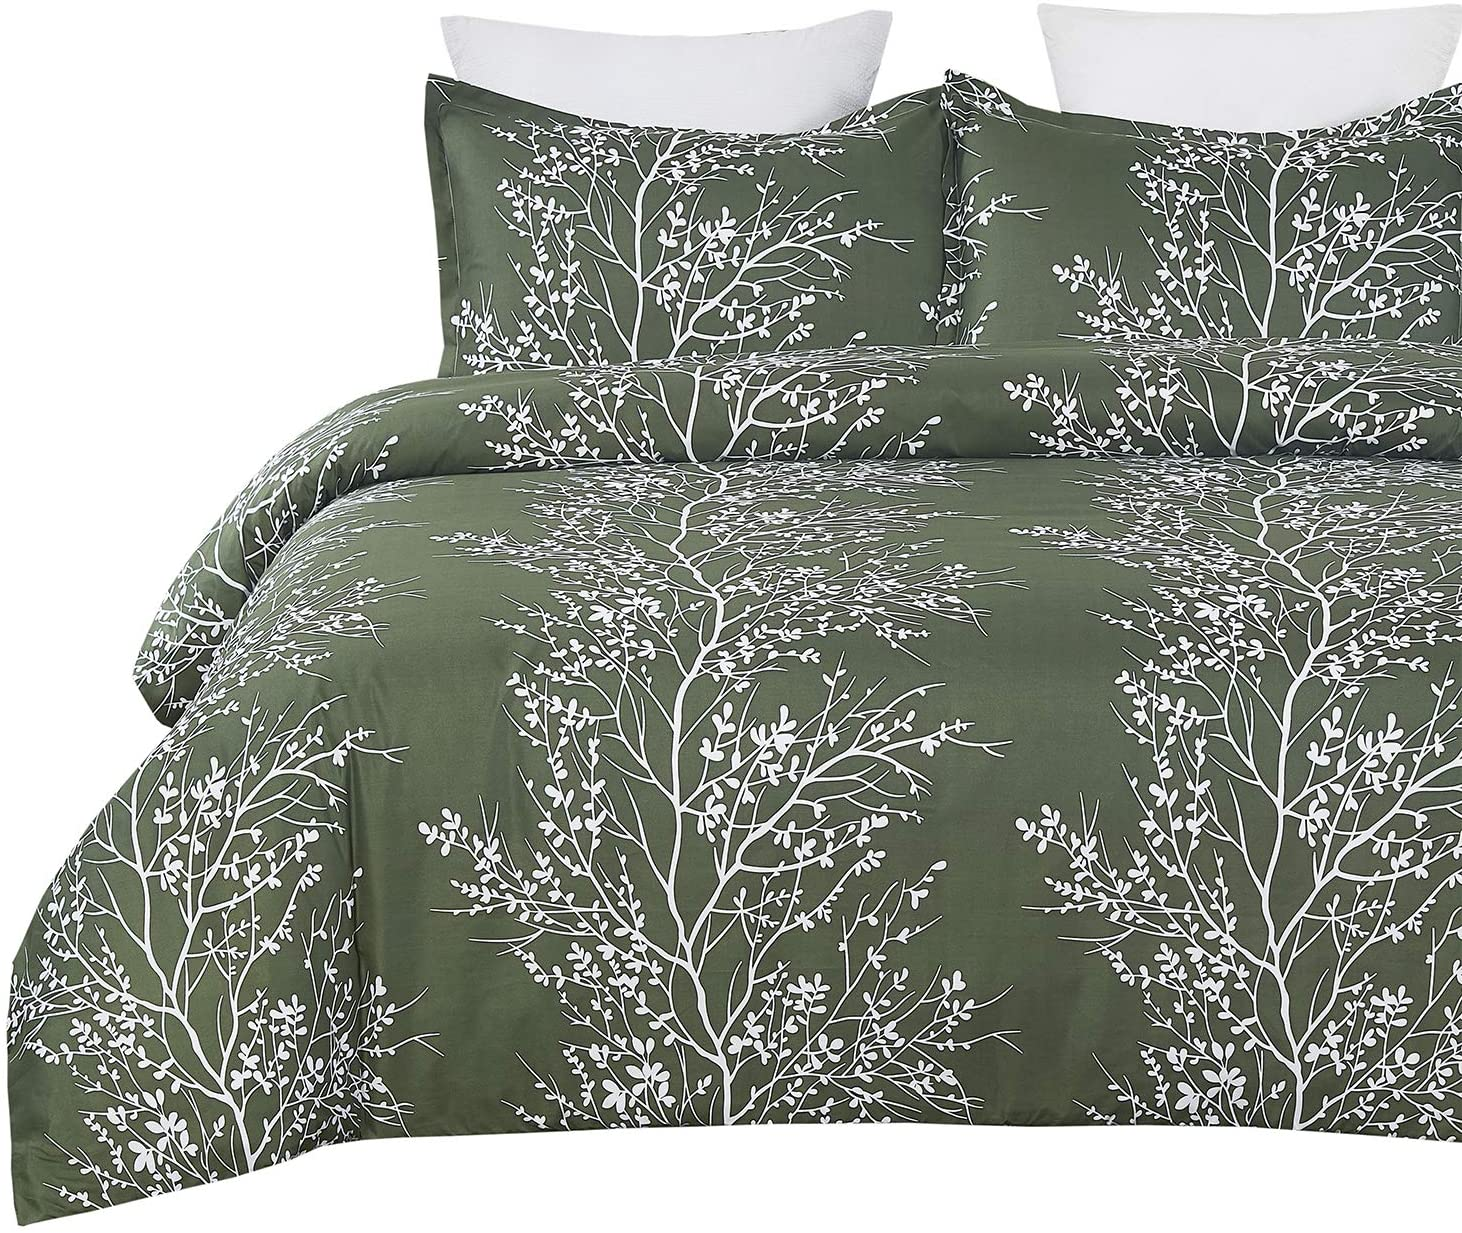 Vaulia Lightweight Microfiber Duvet Cover Set, Dark Green and White Tree Branches Printed Pattern - Queen Size